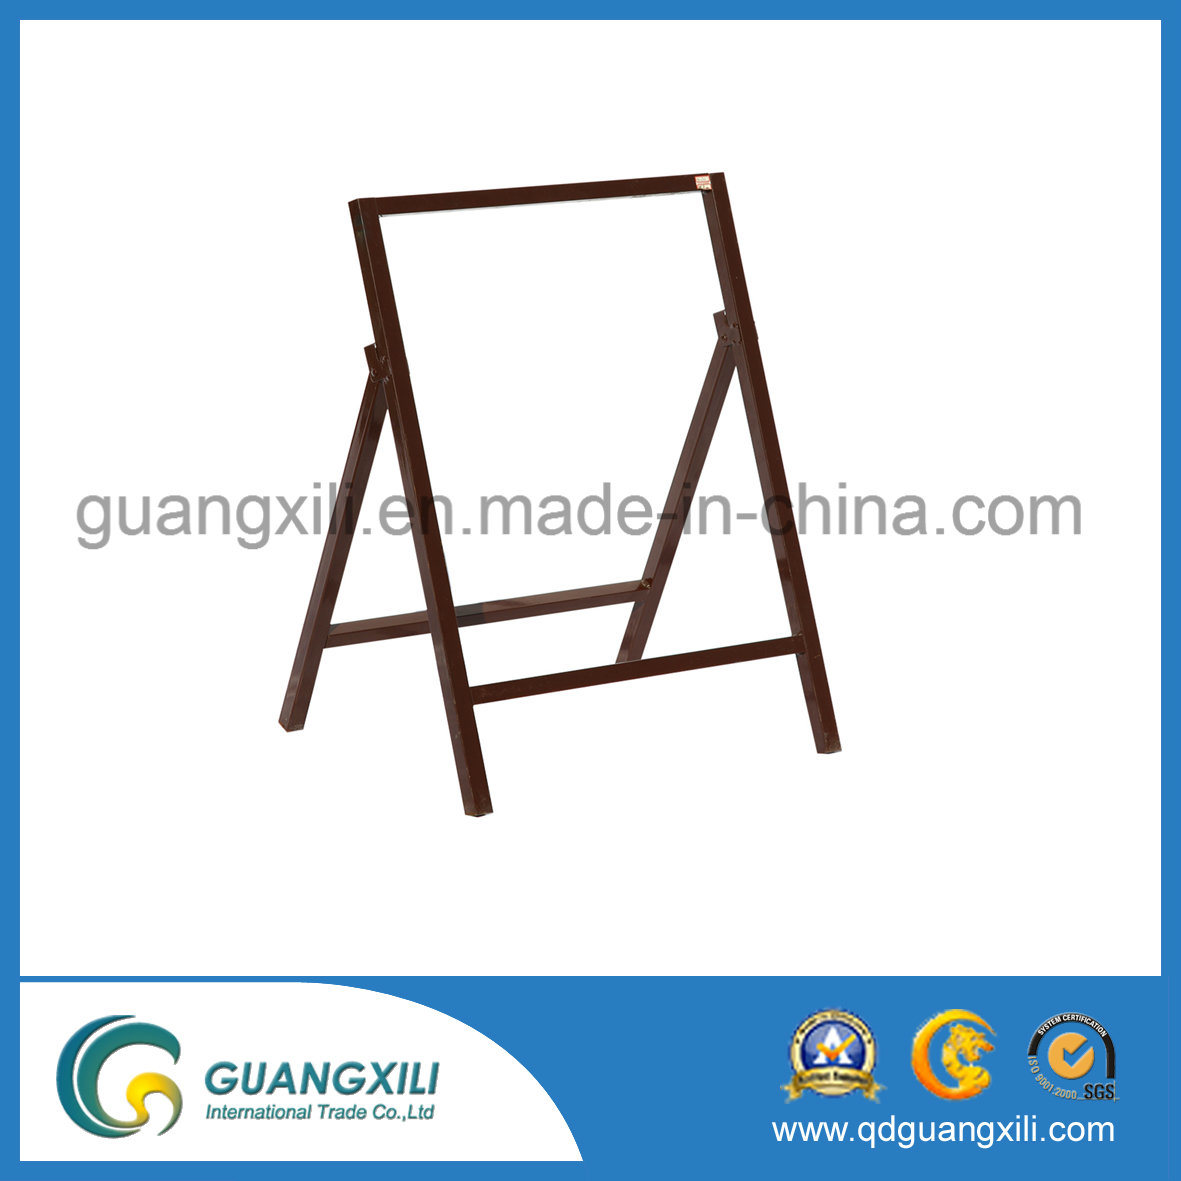 Zinc-Coated Steel Frame for Hanging Traffic Road Signage pictures & photos